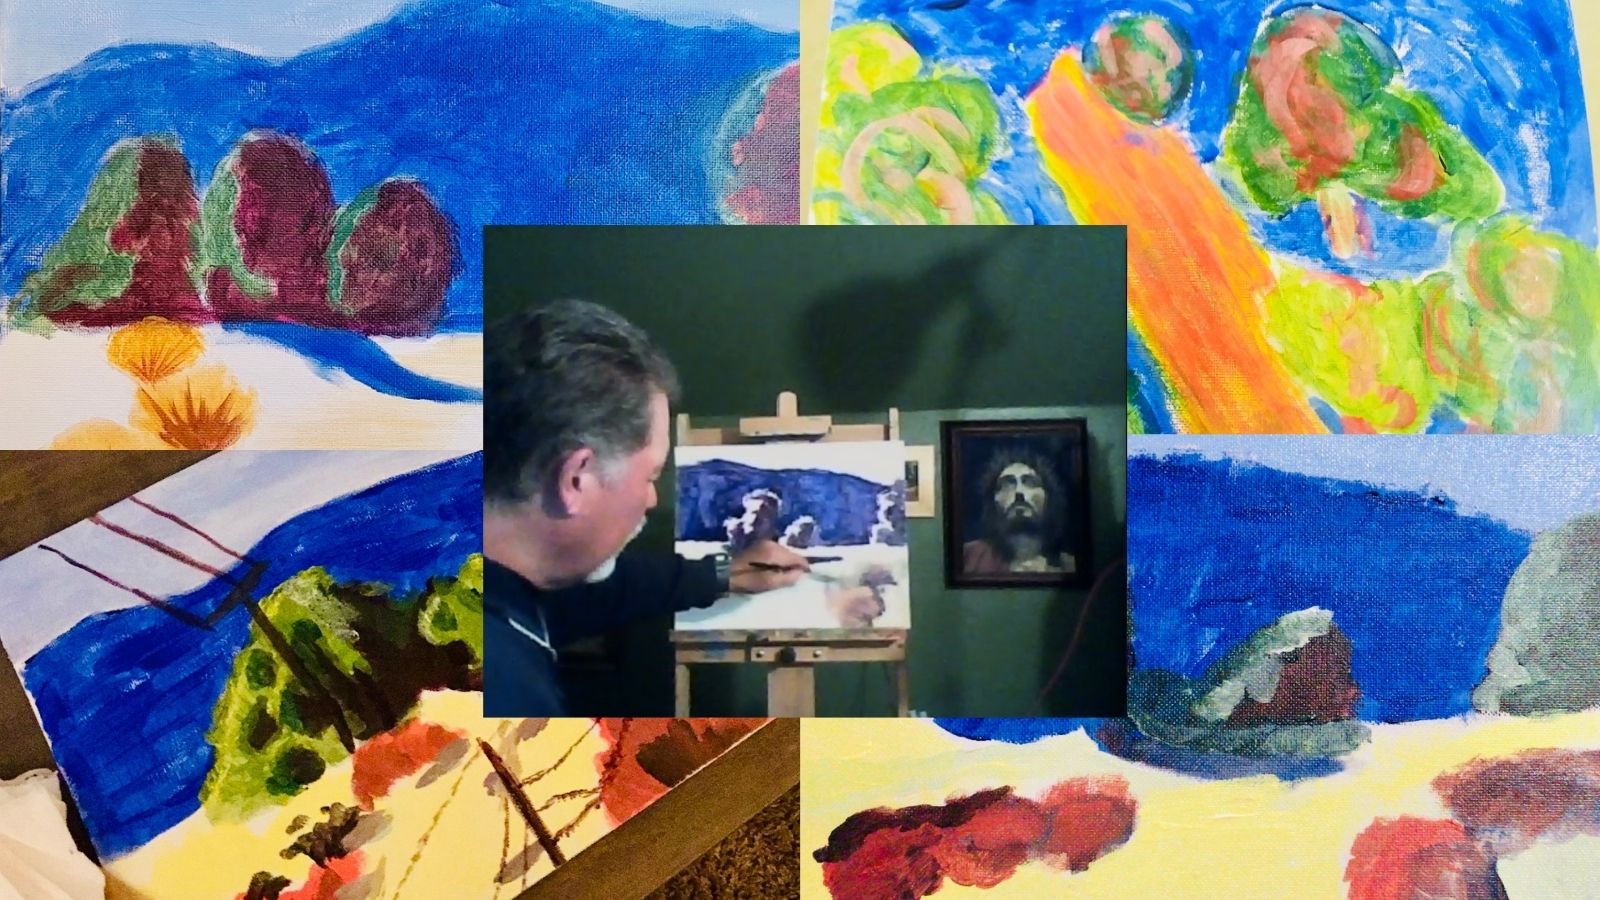 Virtual cheer erupted as artist Richard Gallego led the paint night!